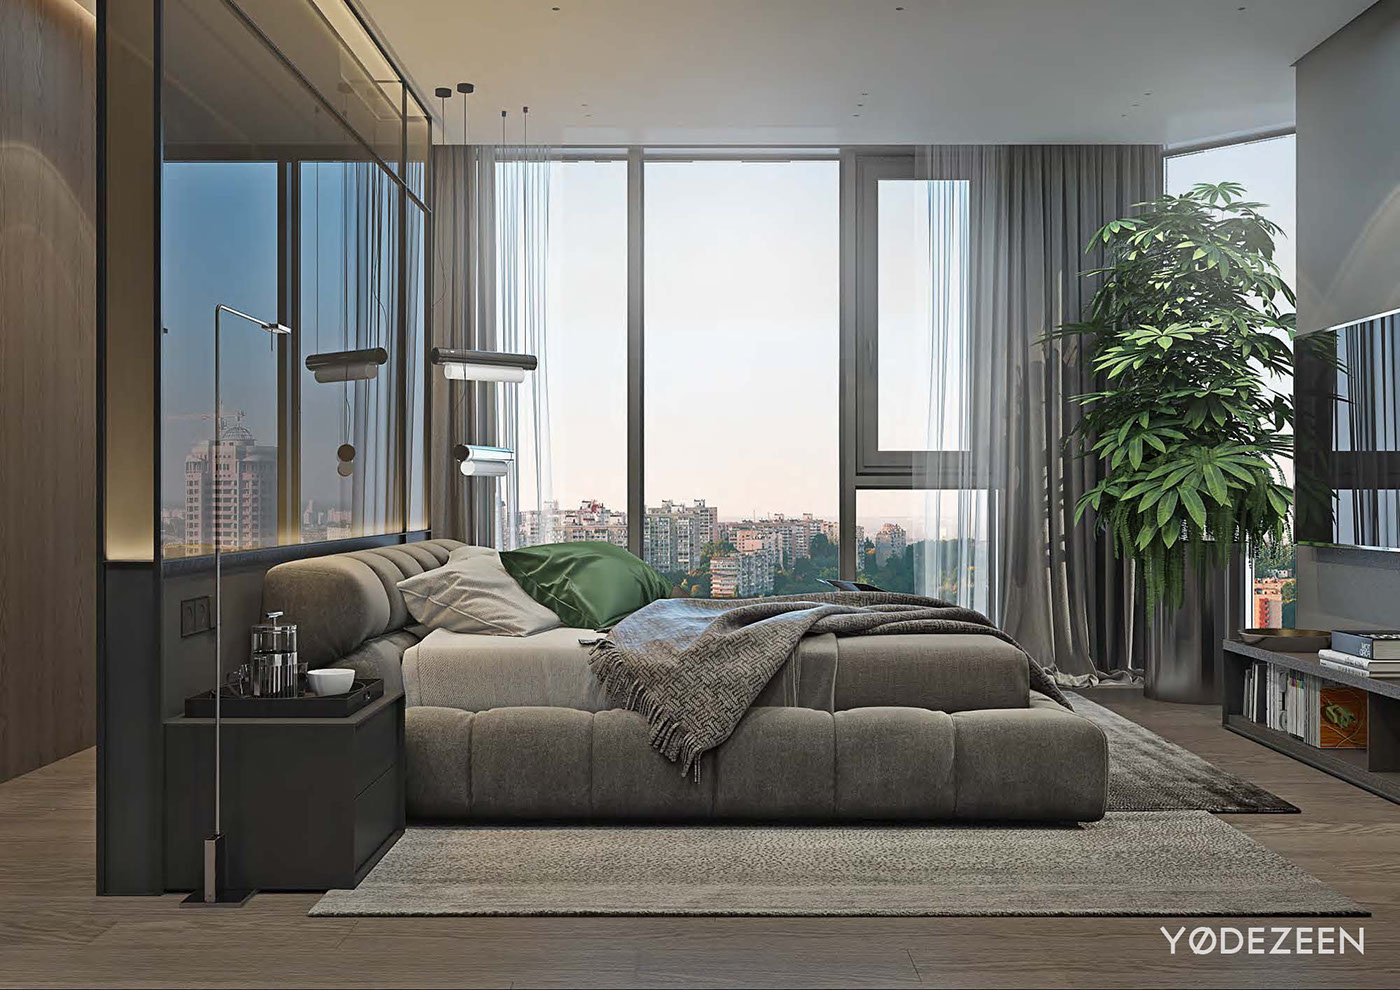 Luxurious Apartment Redefines The Term 'Urban Jungle' images 19